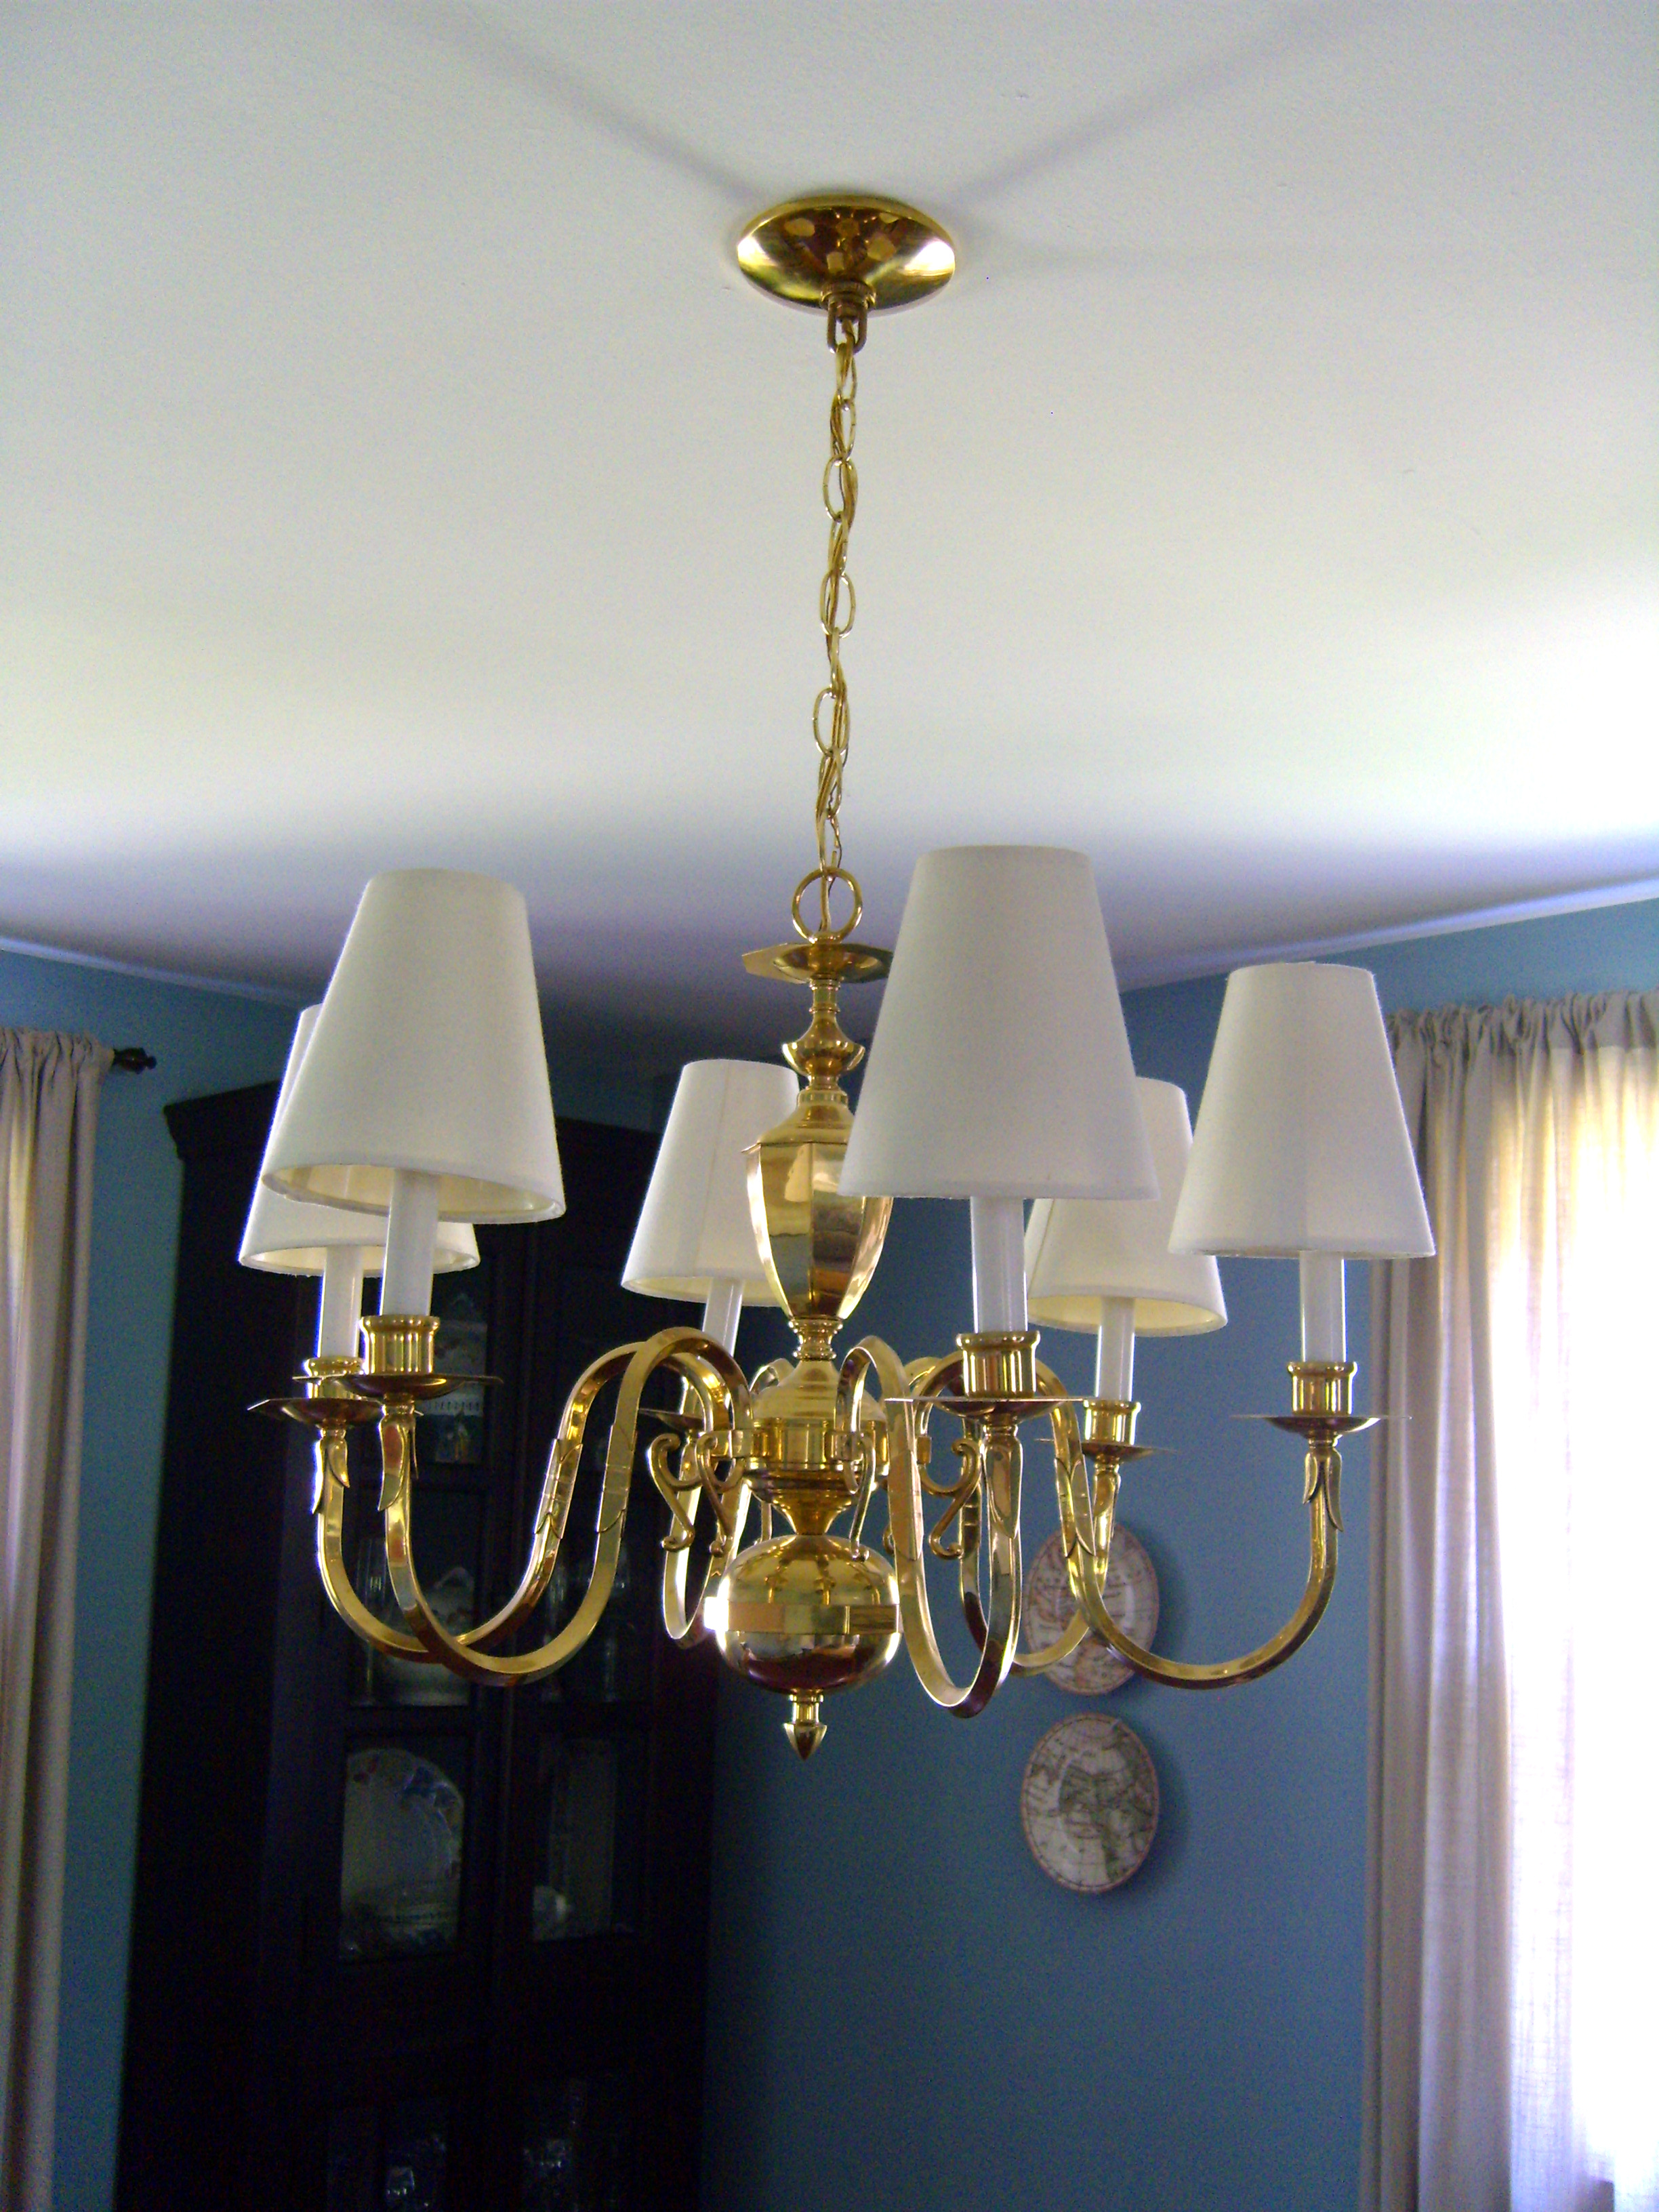 How to choose a chandelier lampshade goodworksfurniture chandelier lamp shades candelabra not small lamp shades for chandeliers included listed interest measure style dsbpexc arubaitofo Images